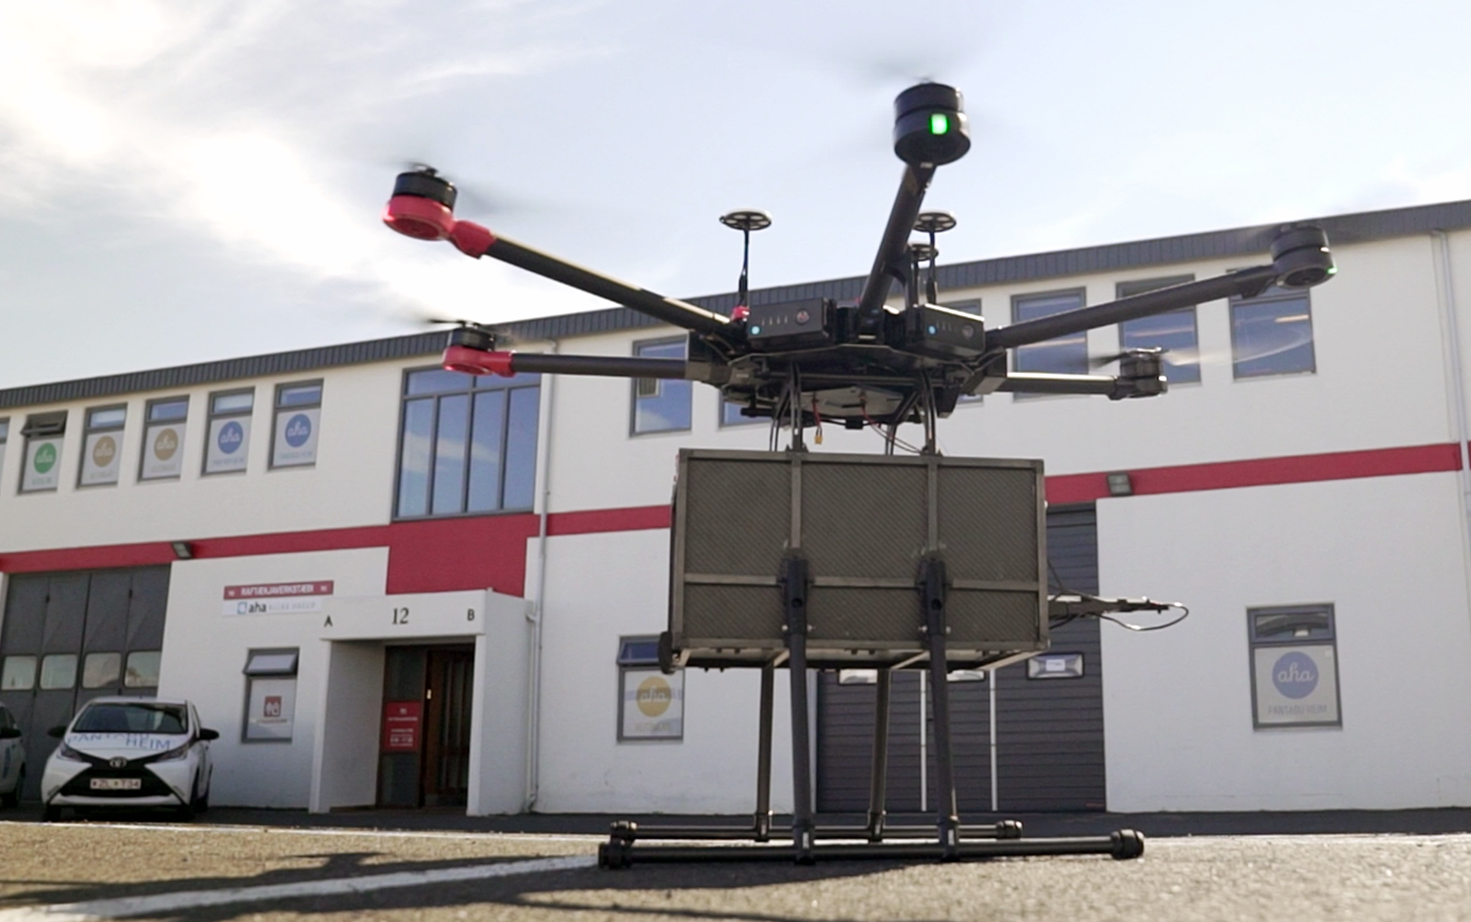 Urban delivery drones take to the skies in Iceland